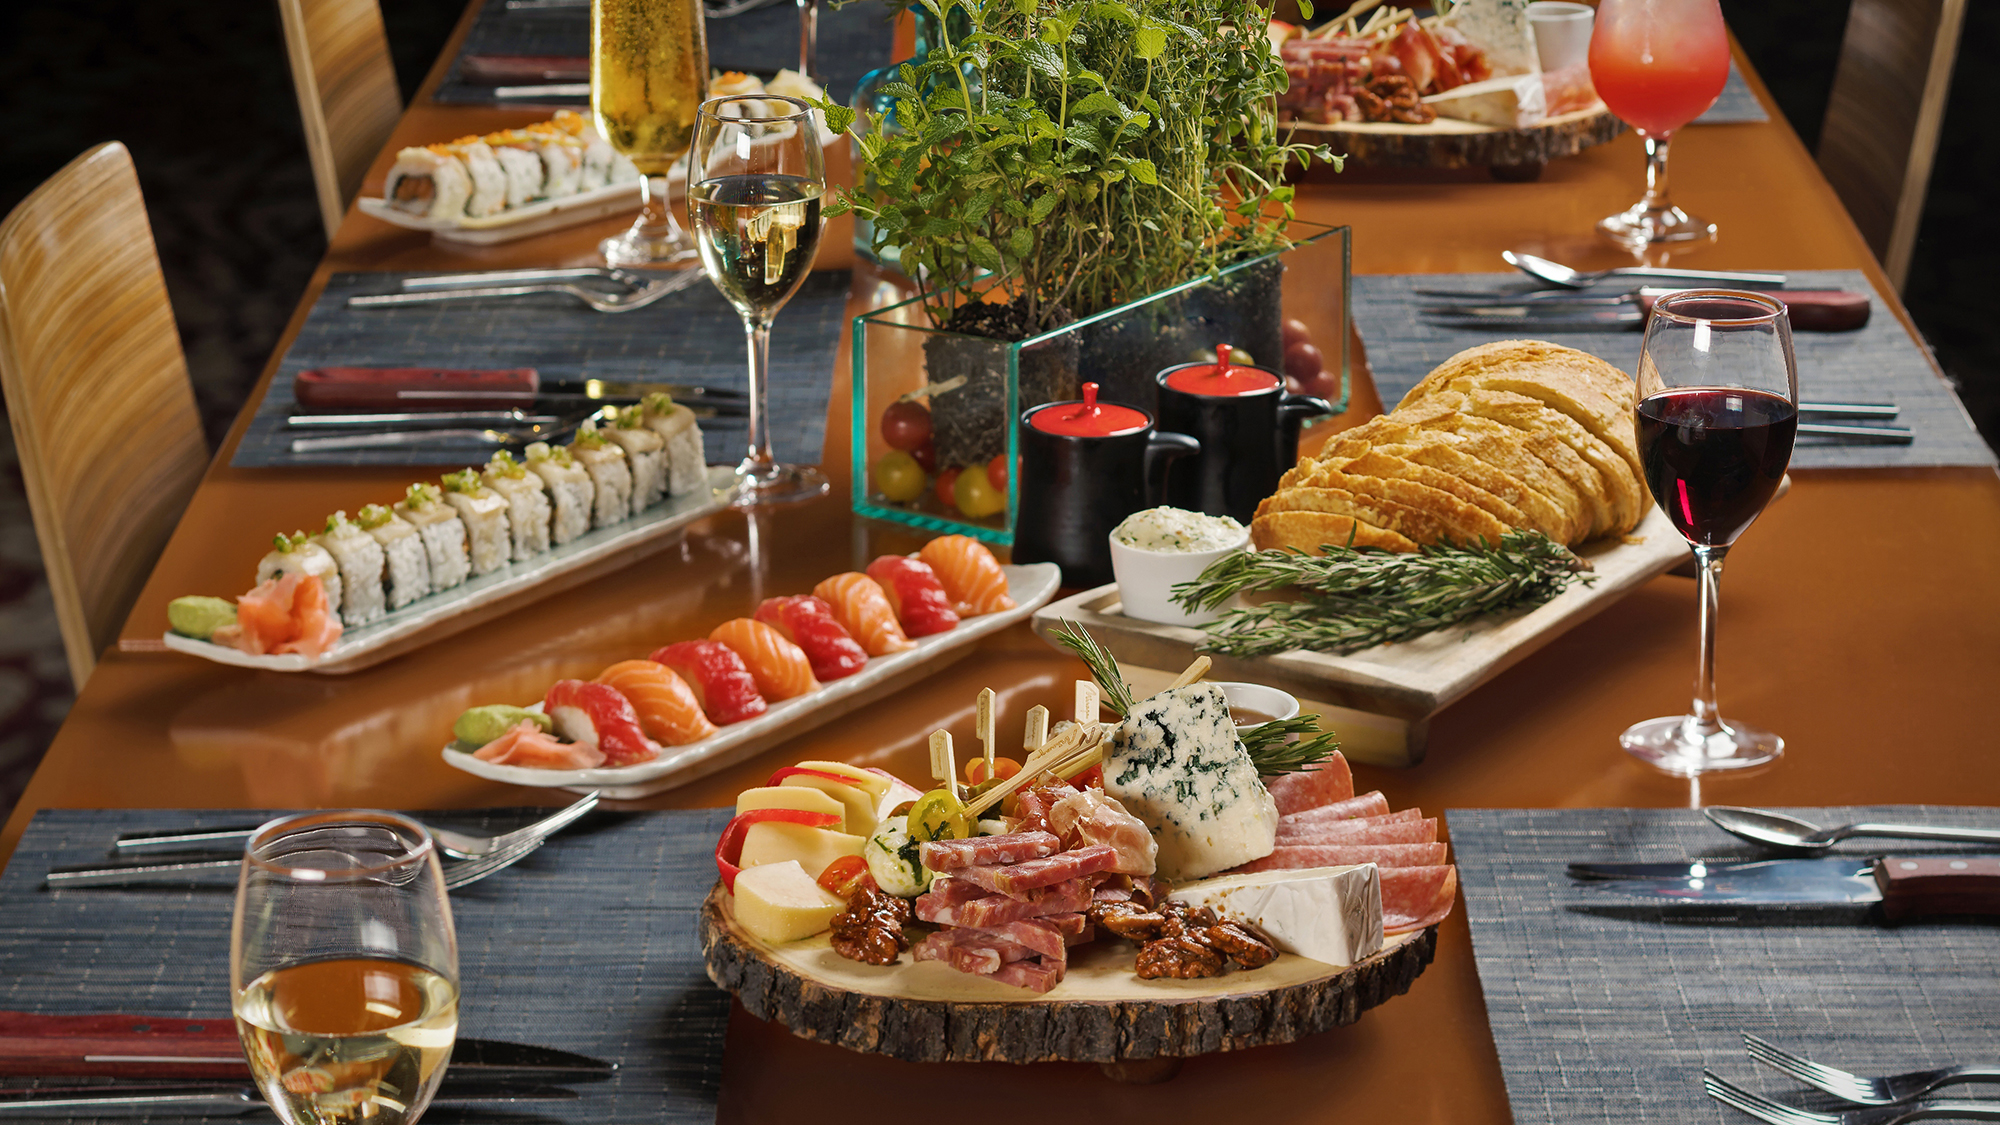 mirage s cravings buffet takes the action tableside travel weekly rh travelweekly com mirage cravings buffet coupon mirage 2 for 1 buffet coupon